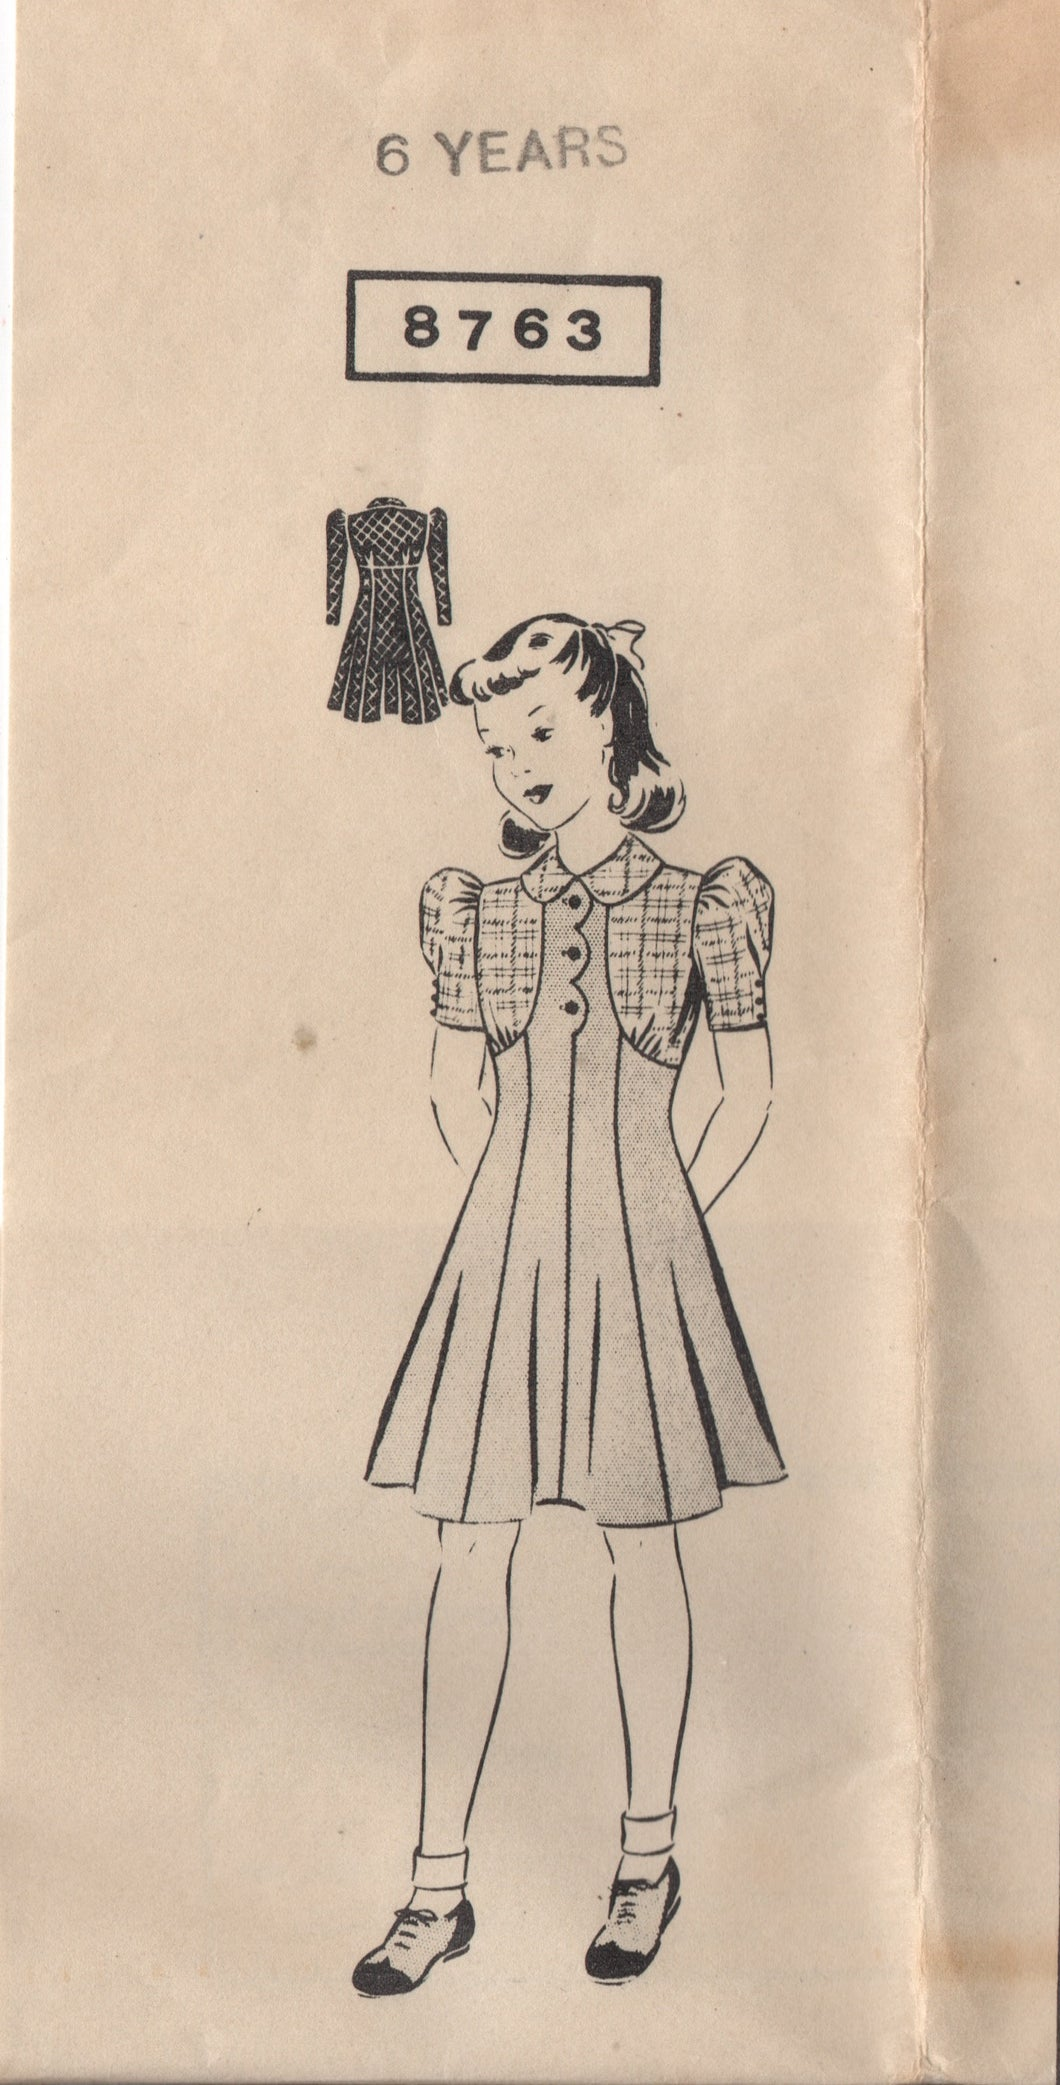 1940's Mail Order Girl's One Piece Contrast Dress with Scallop detail - 6yrs - No. 8763